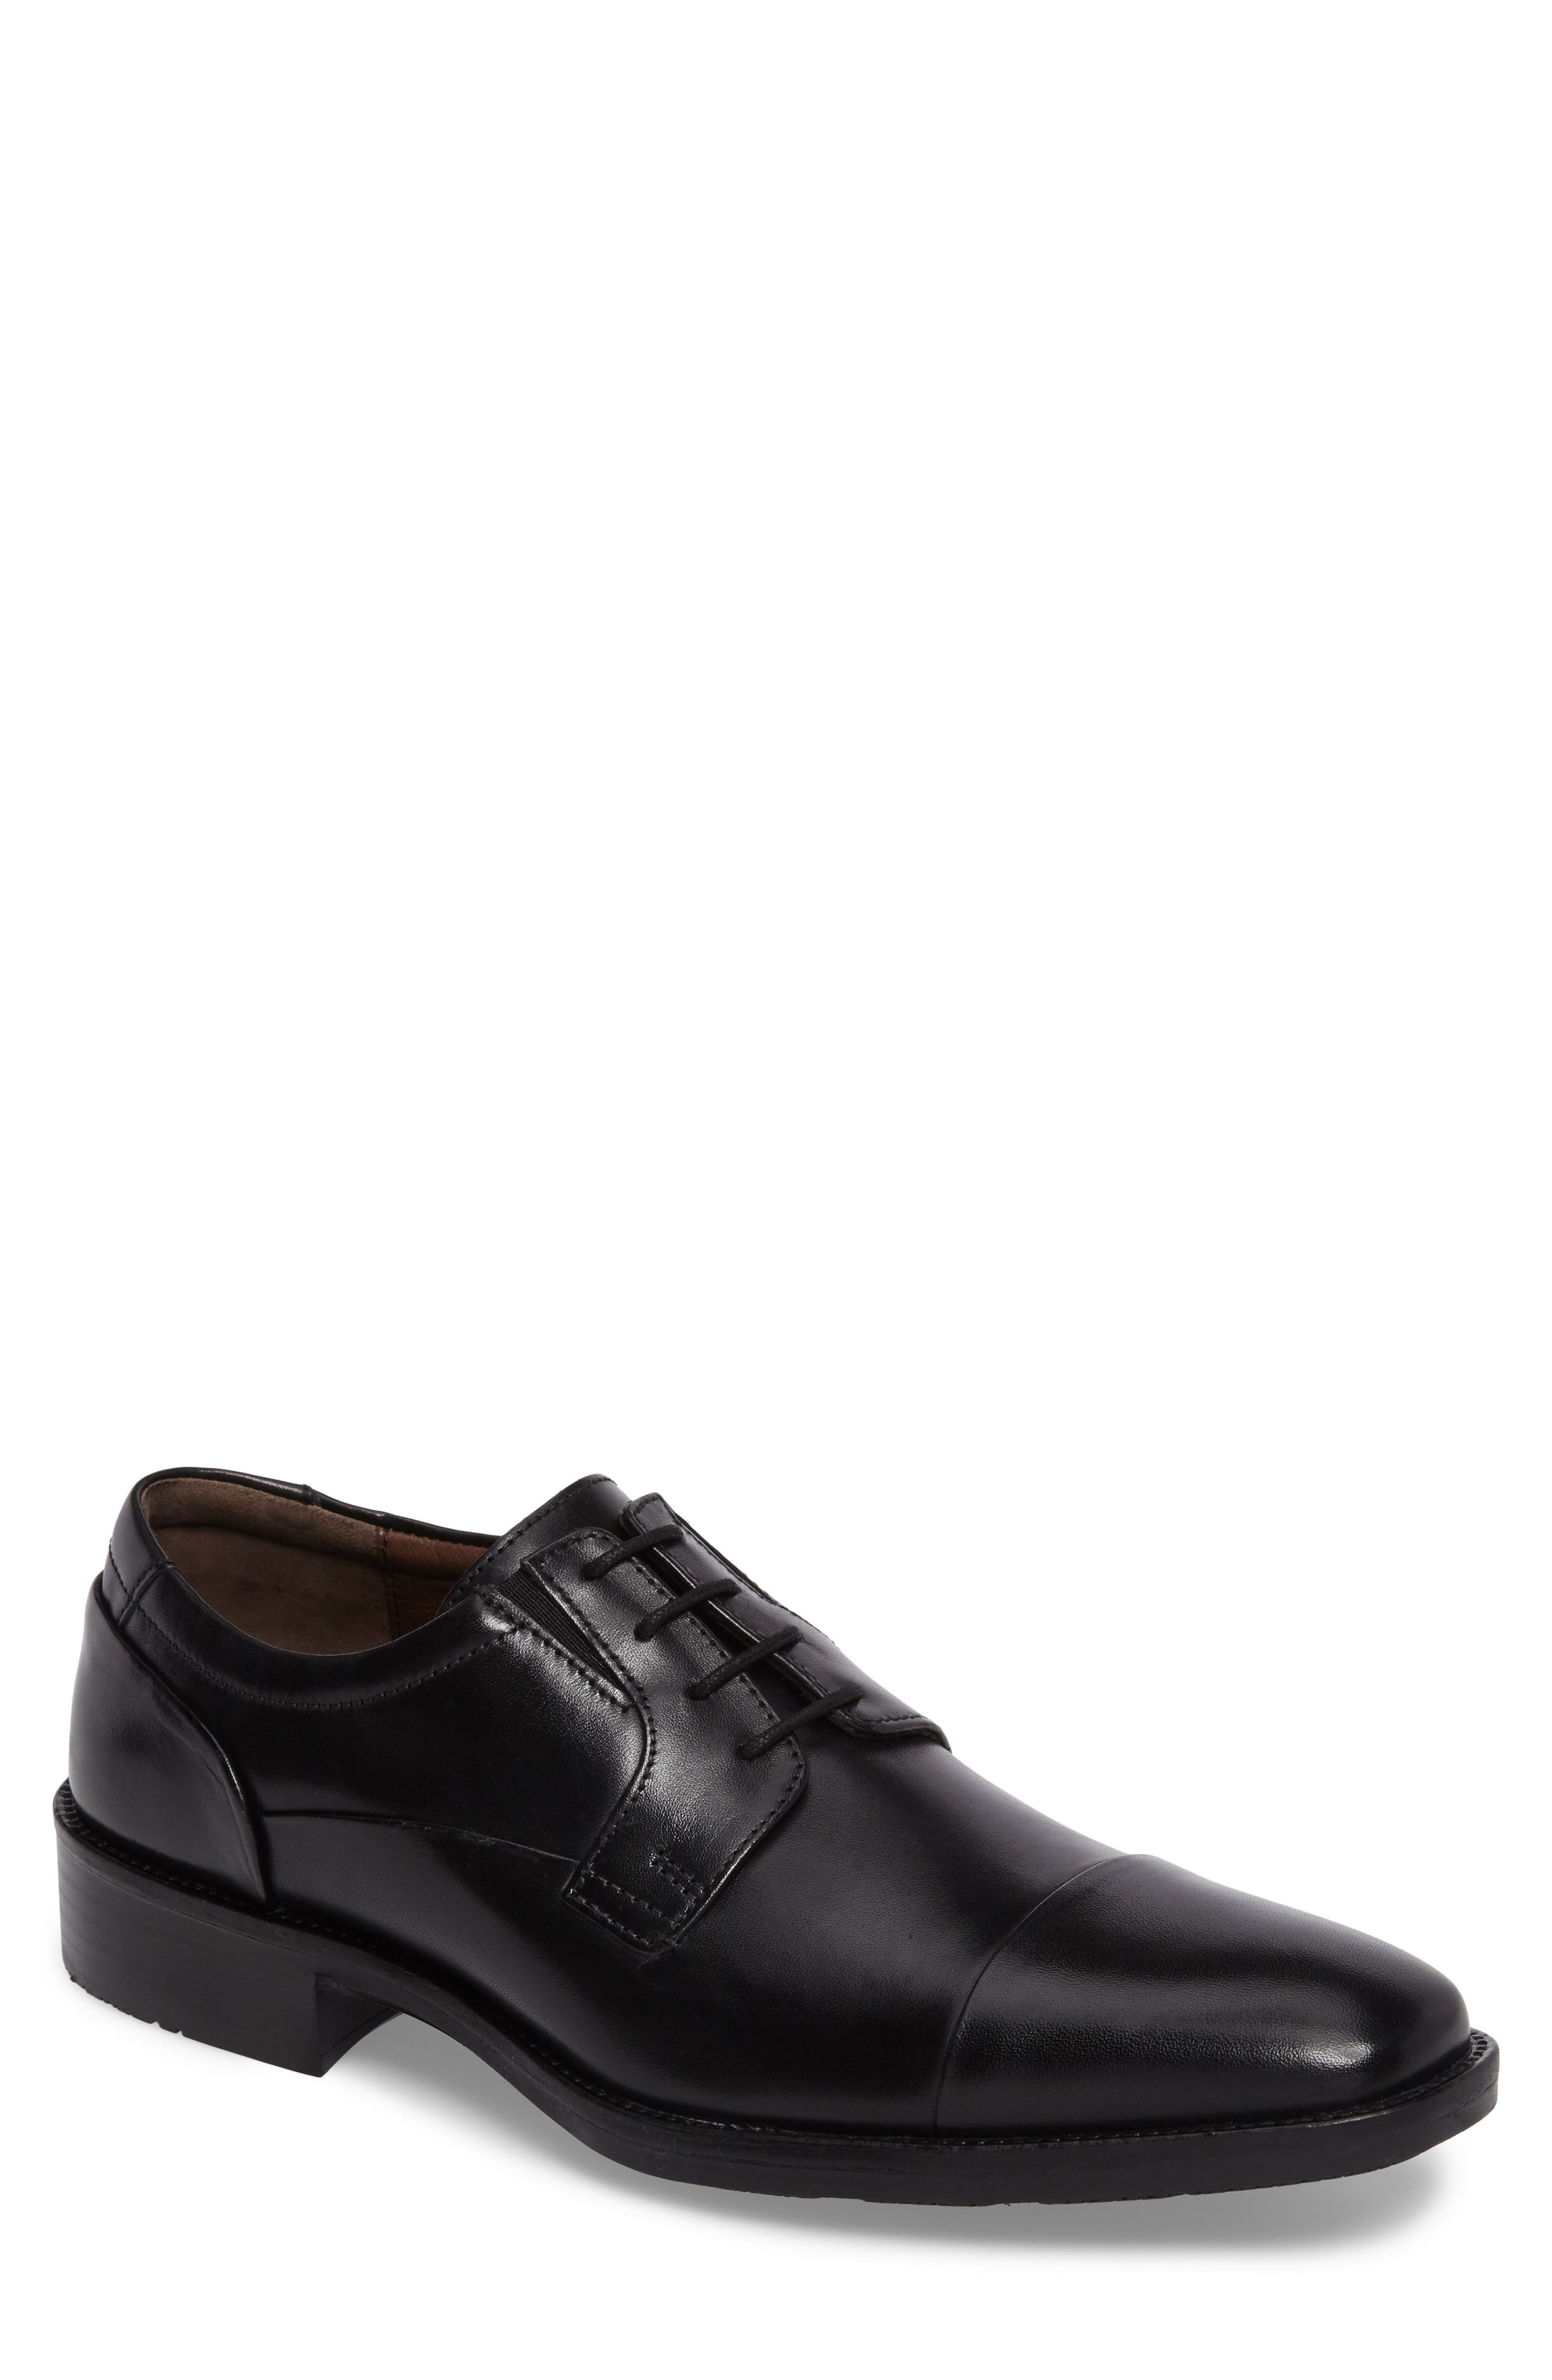 Lancaster Cap Toe Derby,                         Main,                         color, Black